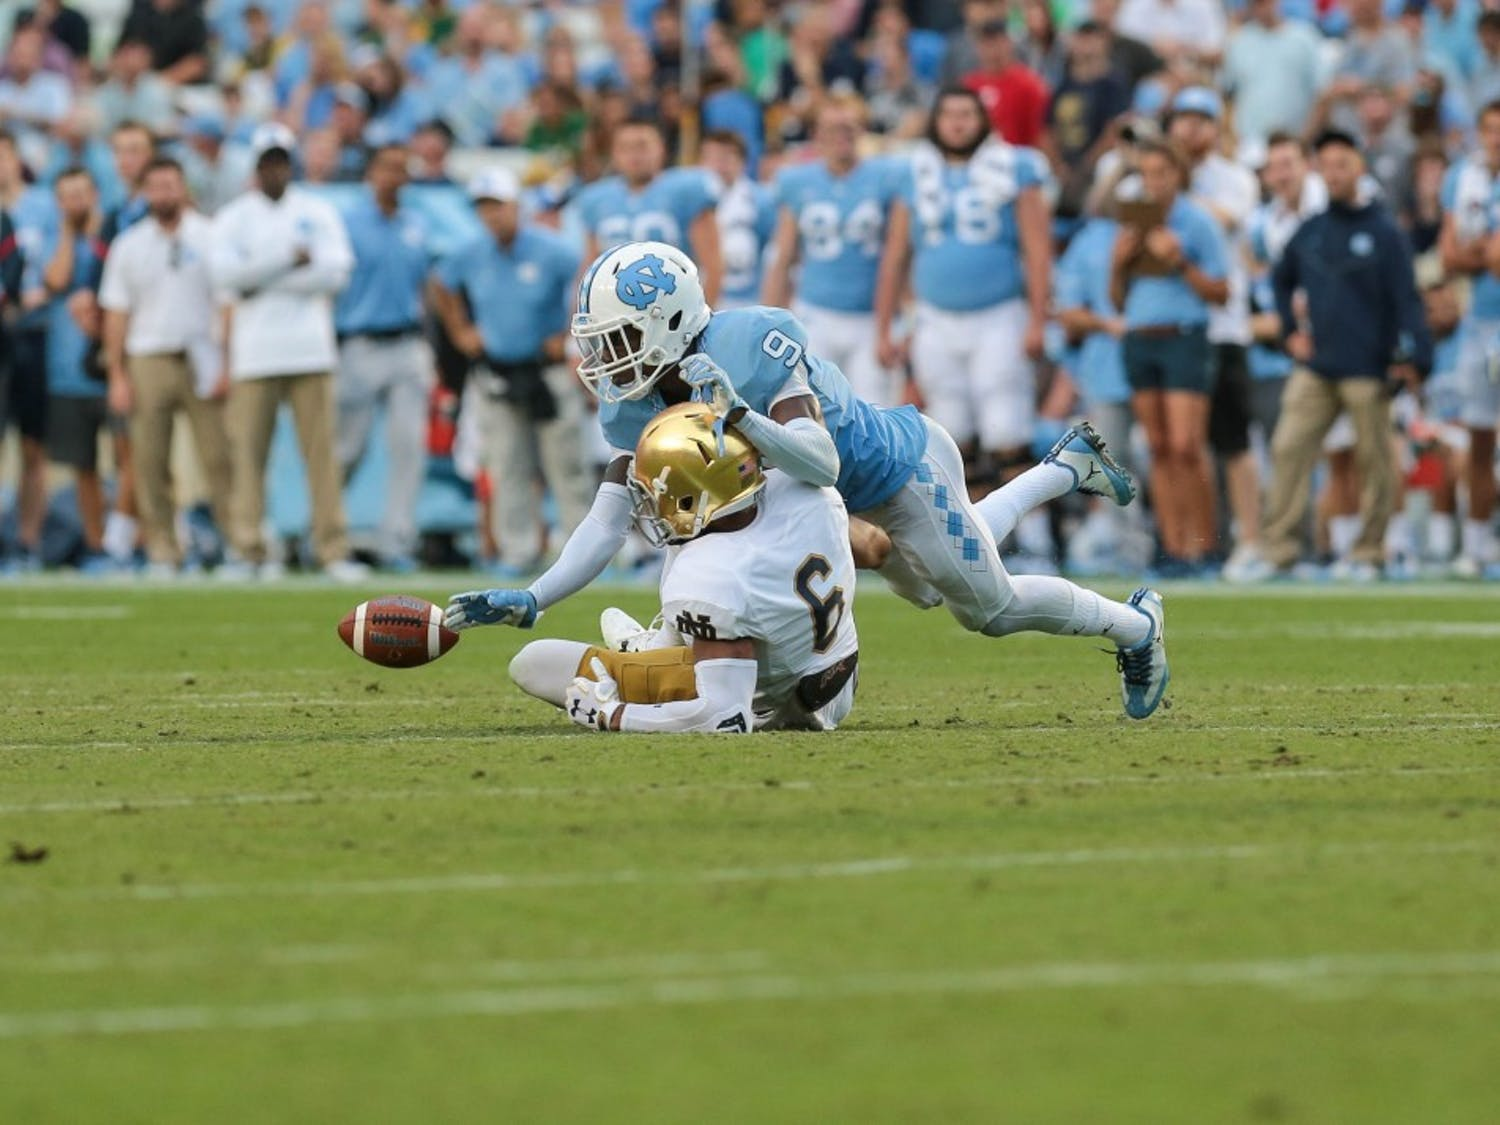 UNC football lost against Notre Dame 33-10 in Kenan Stadium on Saturday.